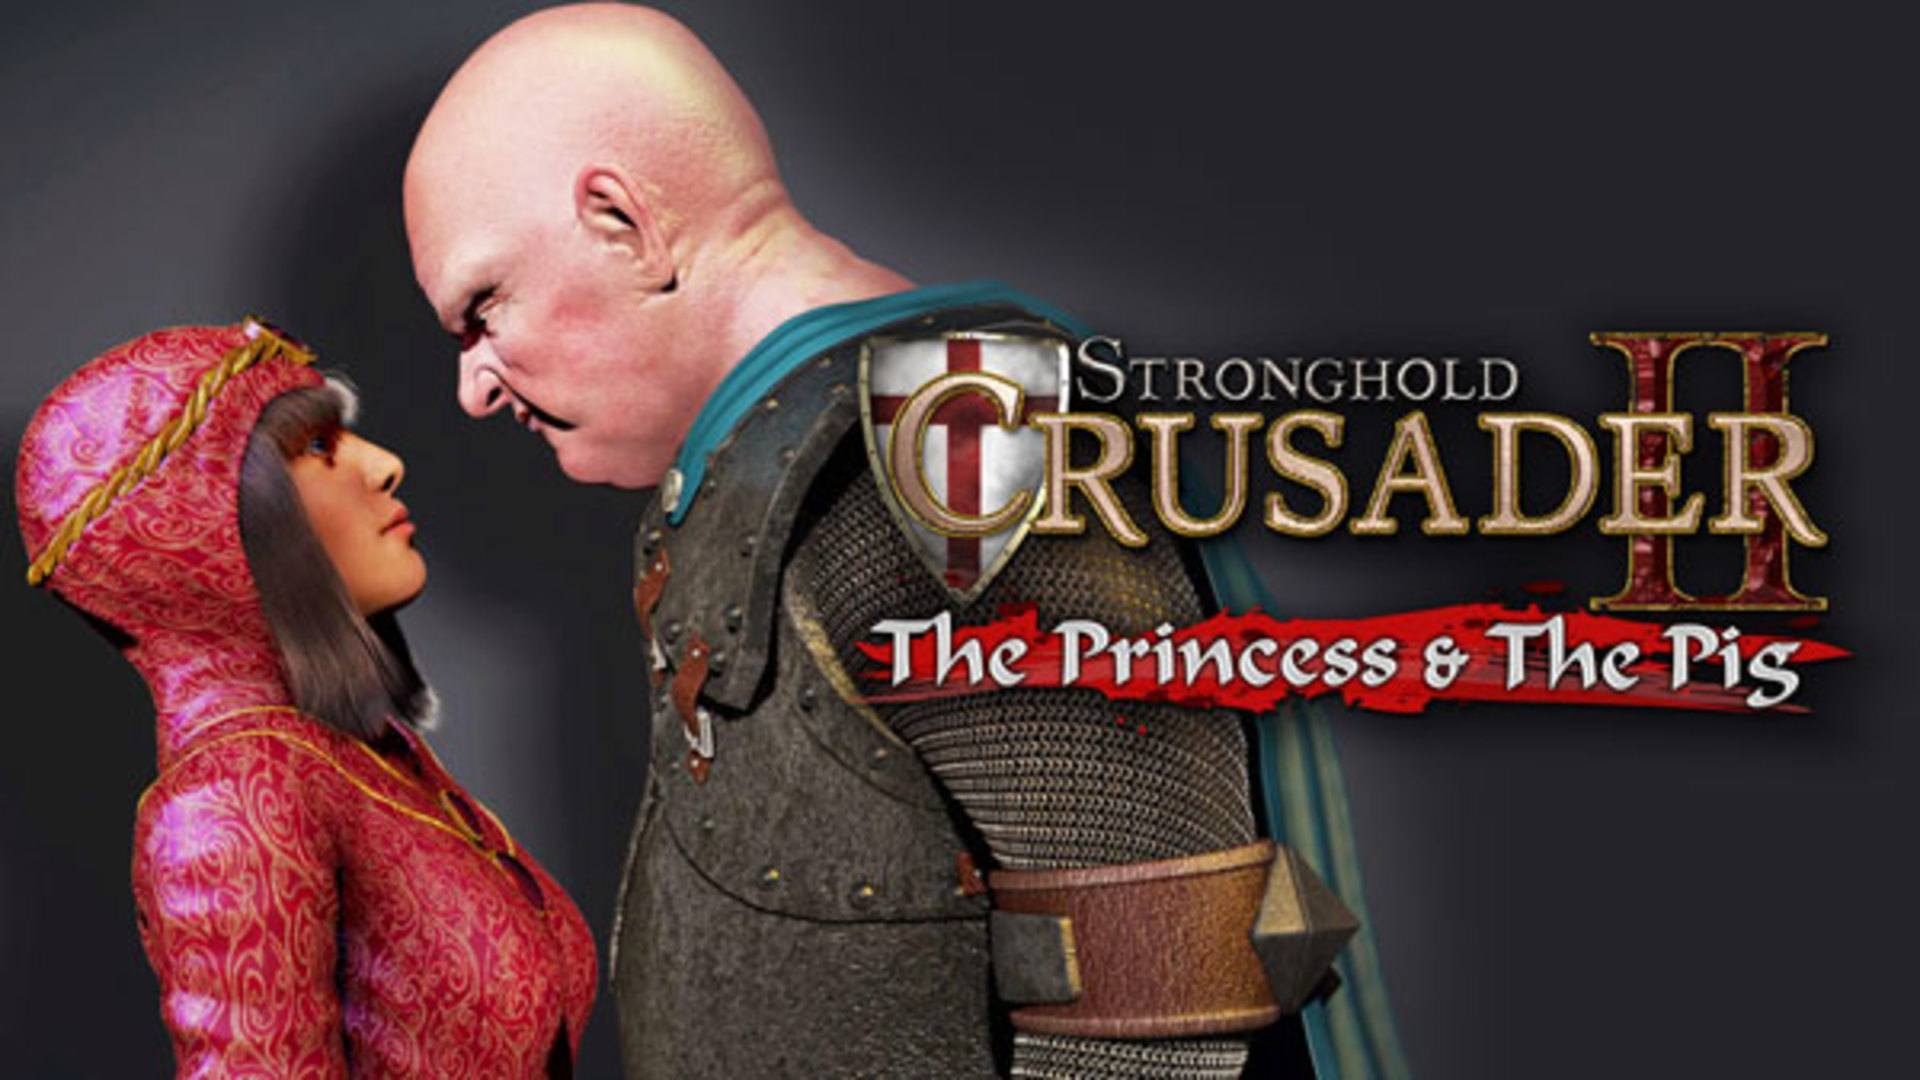 Stronghold Crusader II: The Princess & The Pig 2015 pc game Img-1